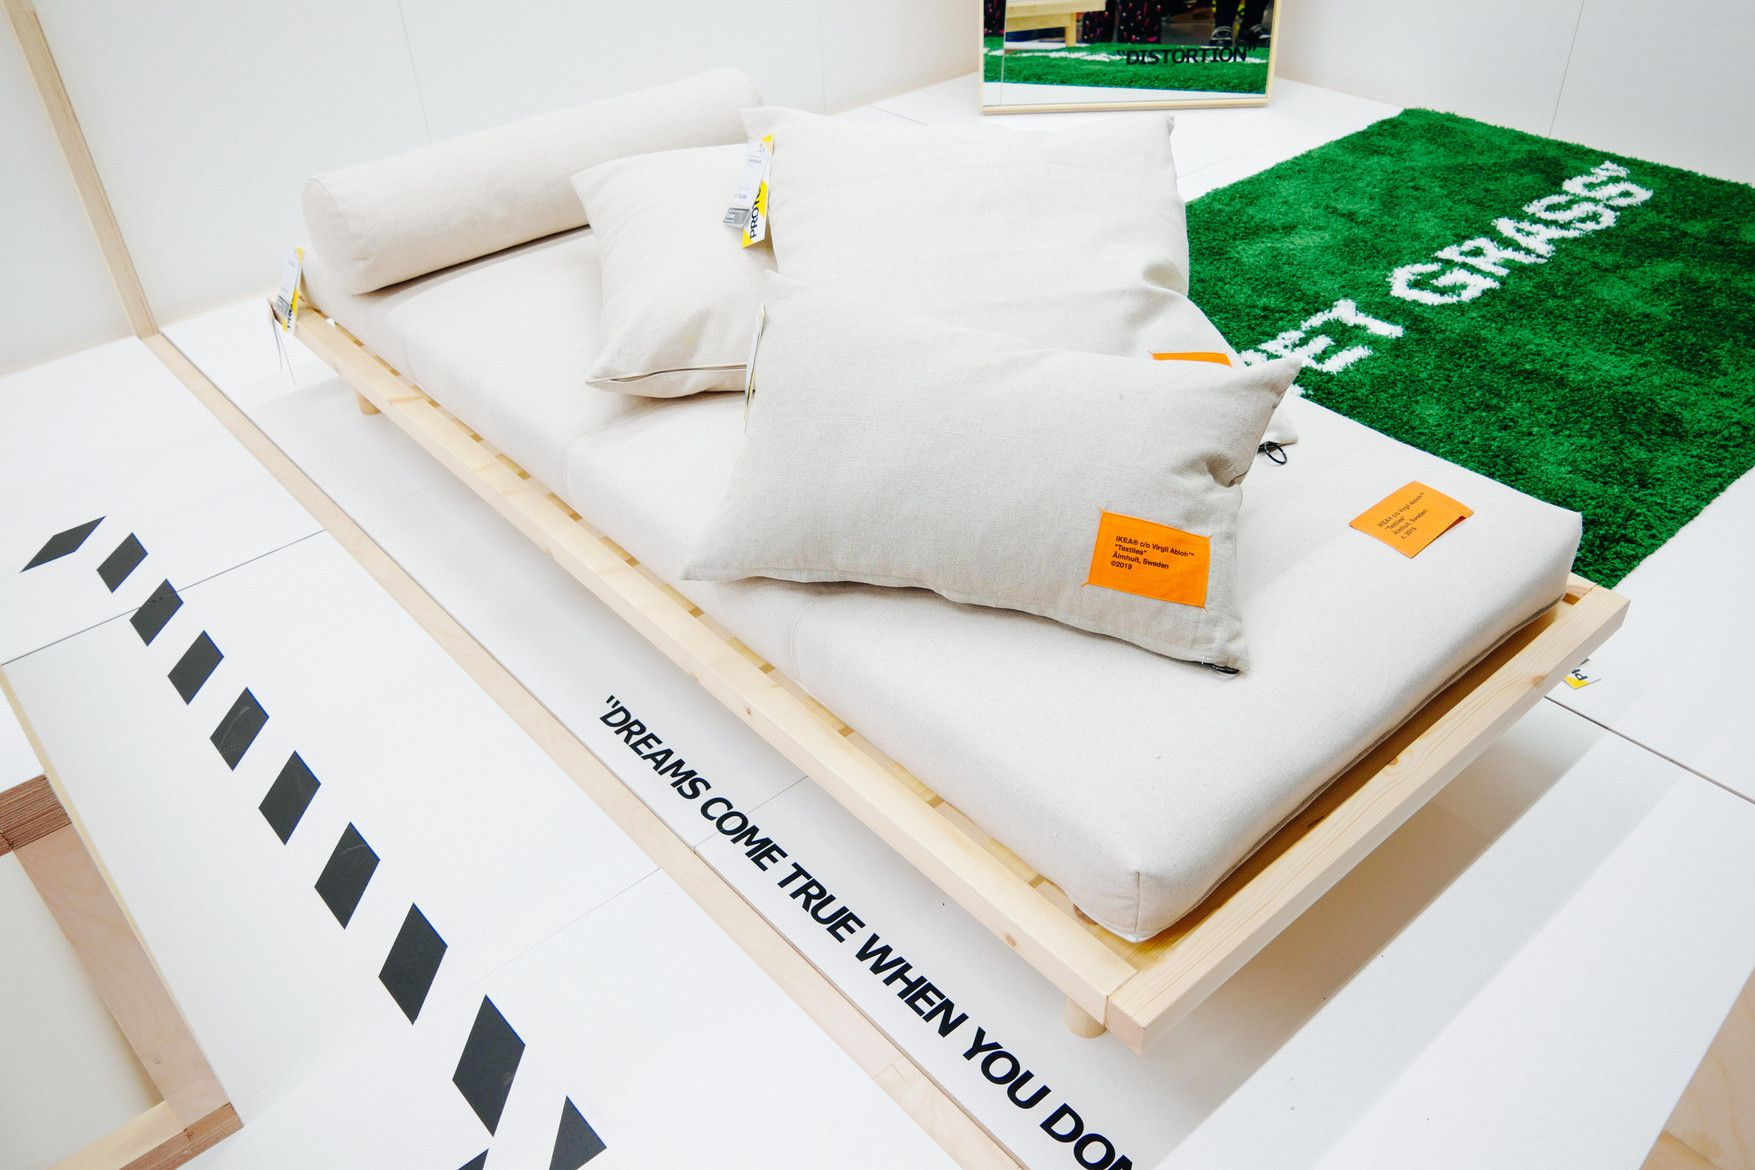 Virgil Abloh Ikea collaboration